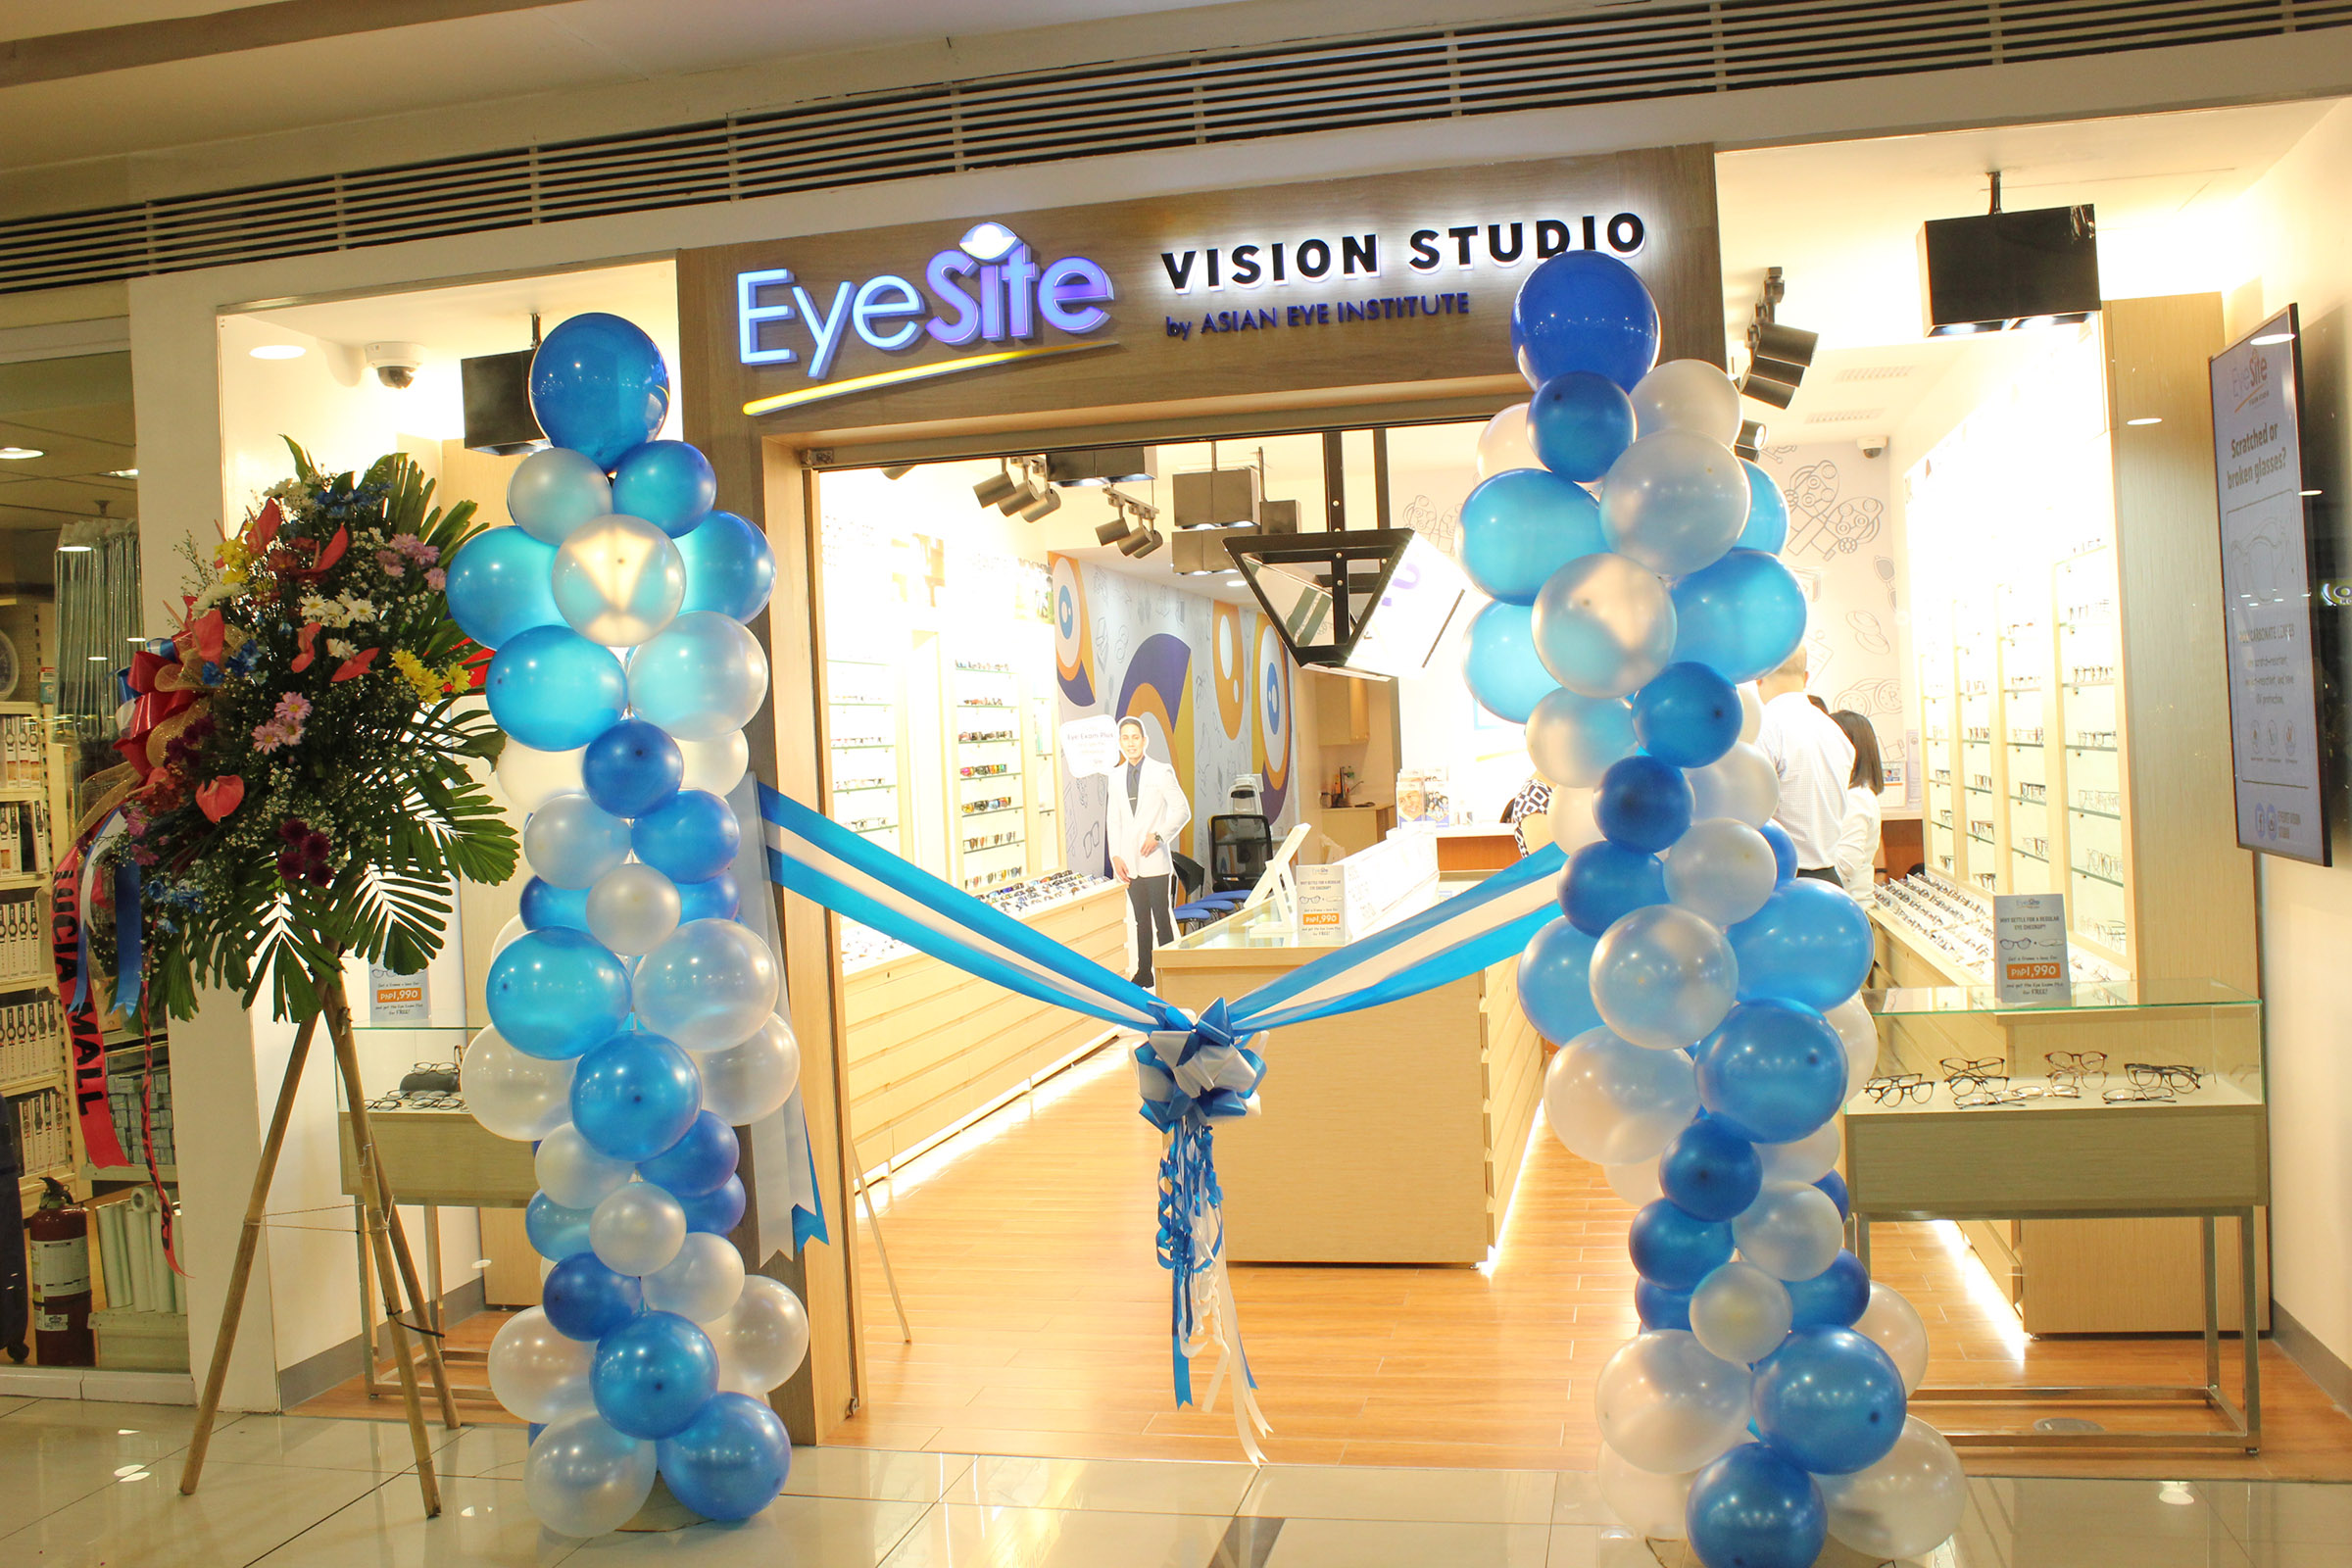 Asian Eye steps up eye care game with launch of EyeSite Vision Studio